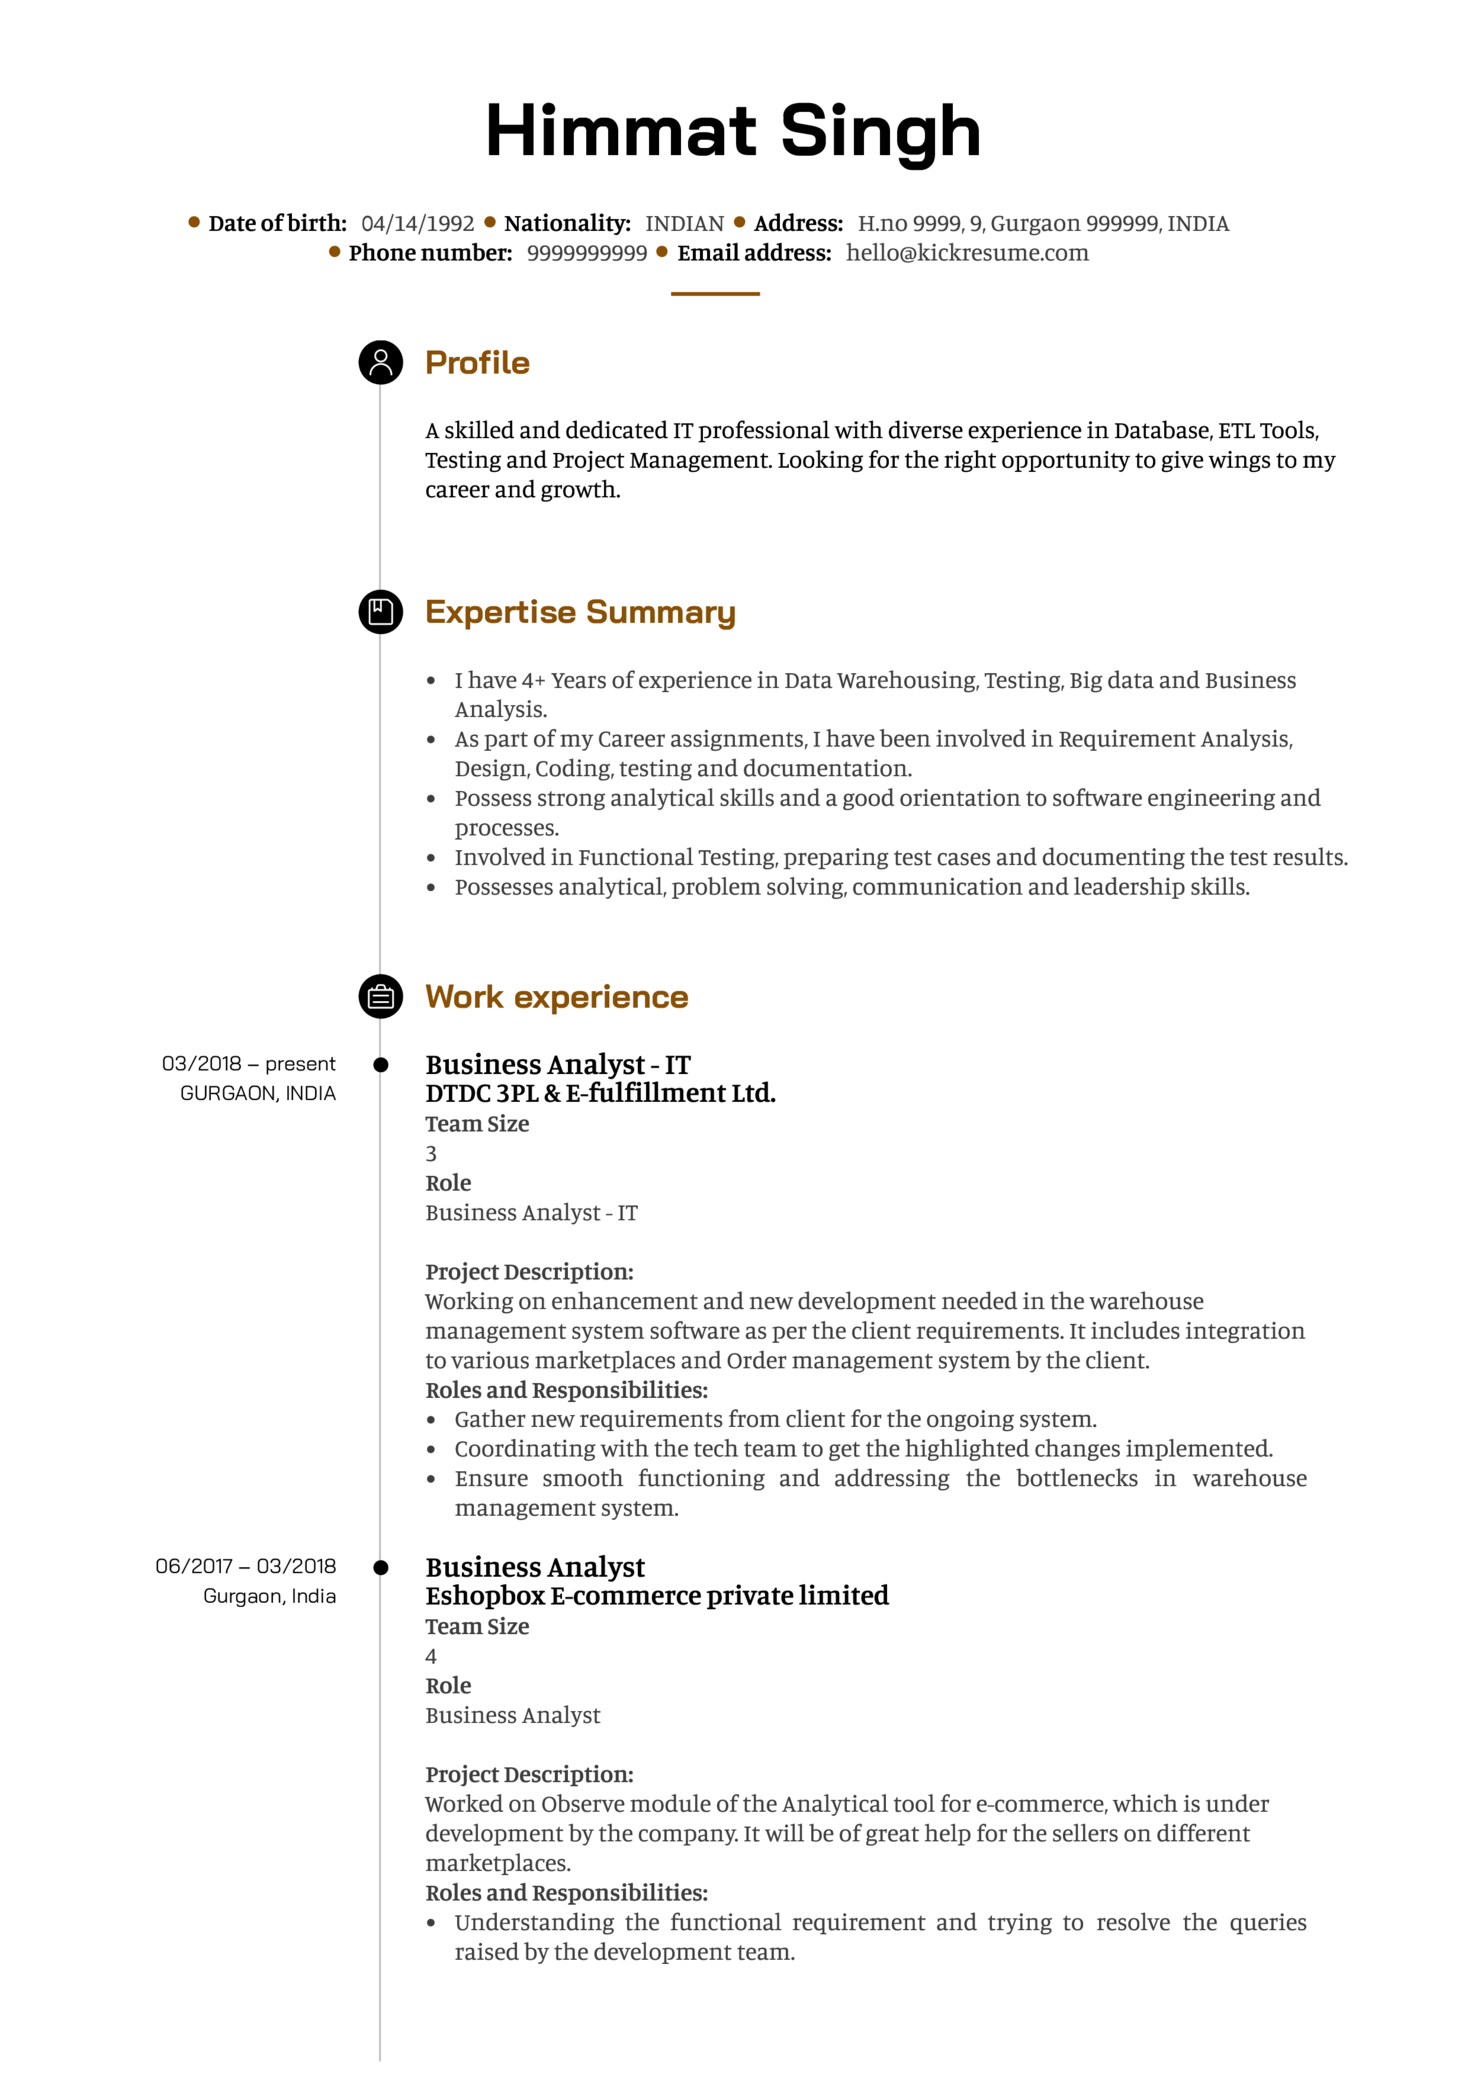 DTDC Business Analyst Resume Template (Part 1)